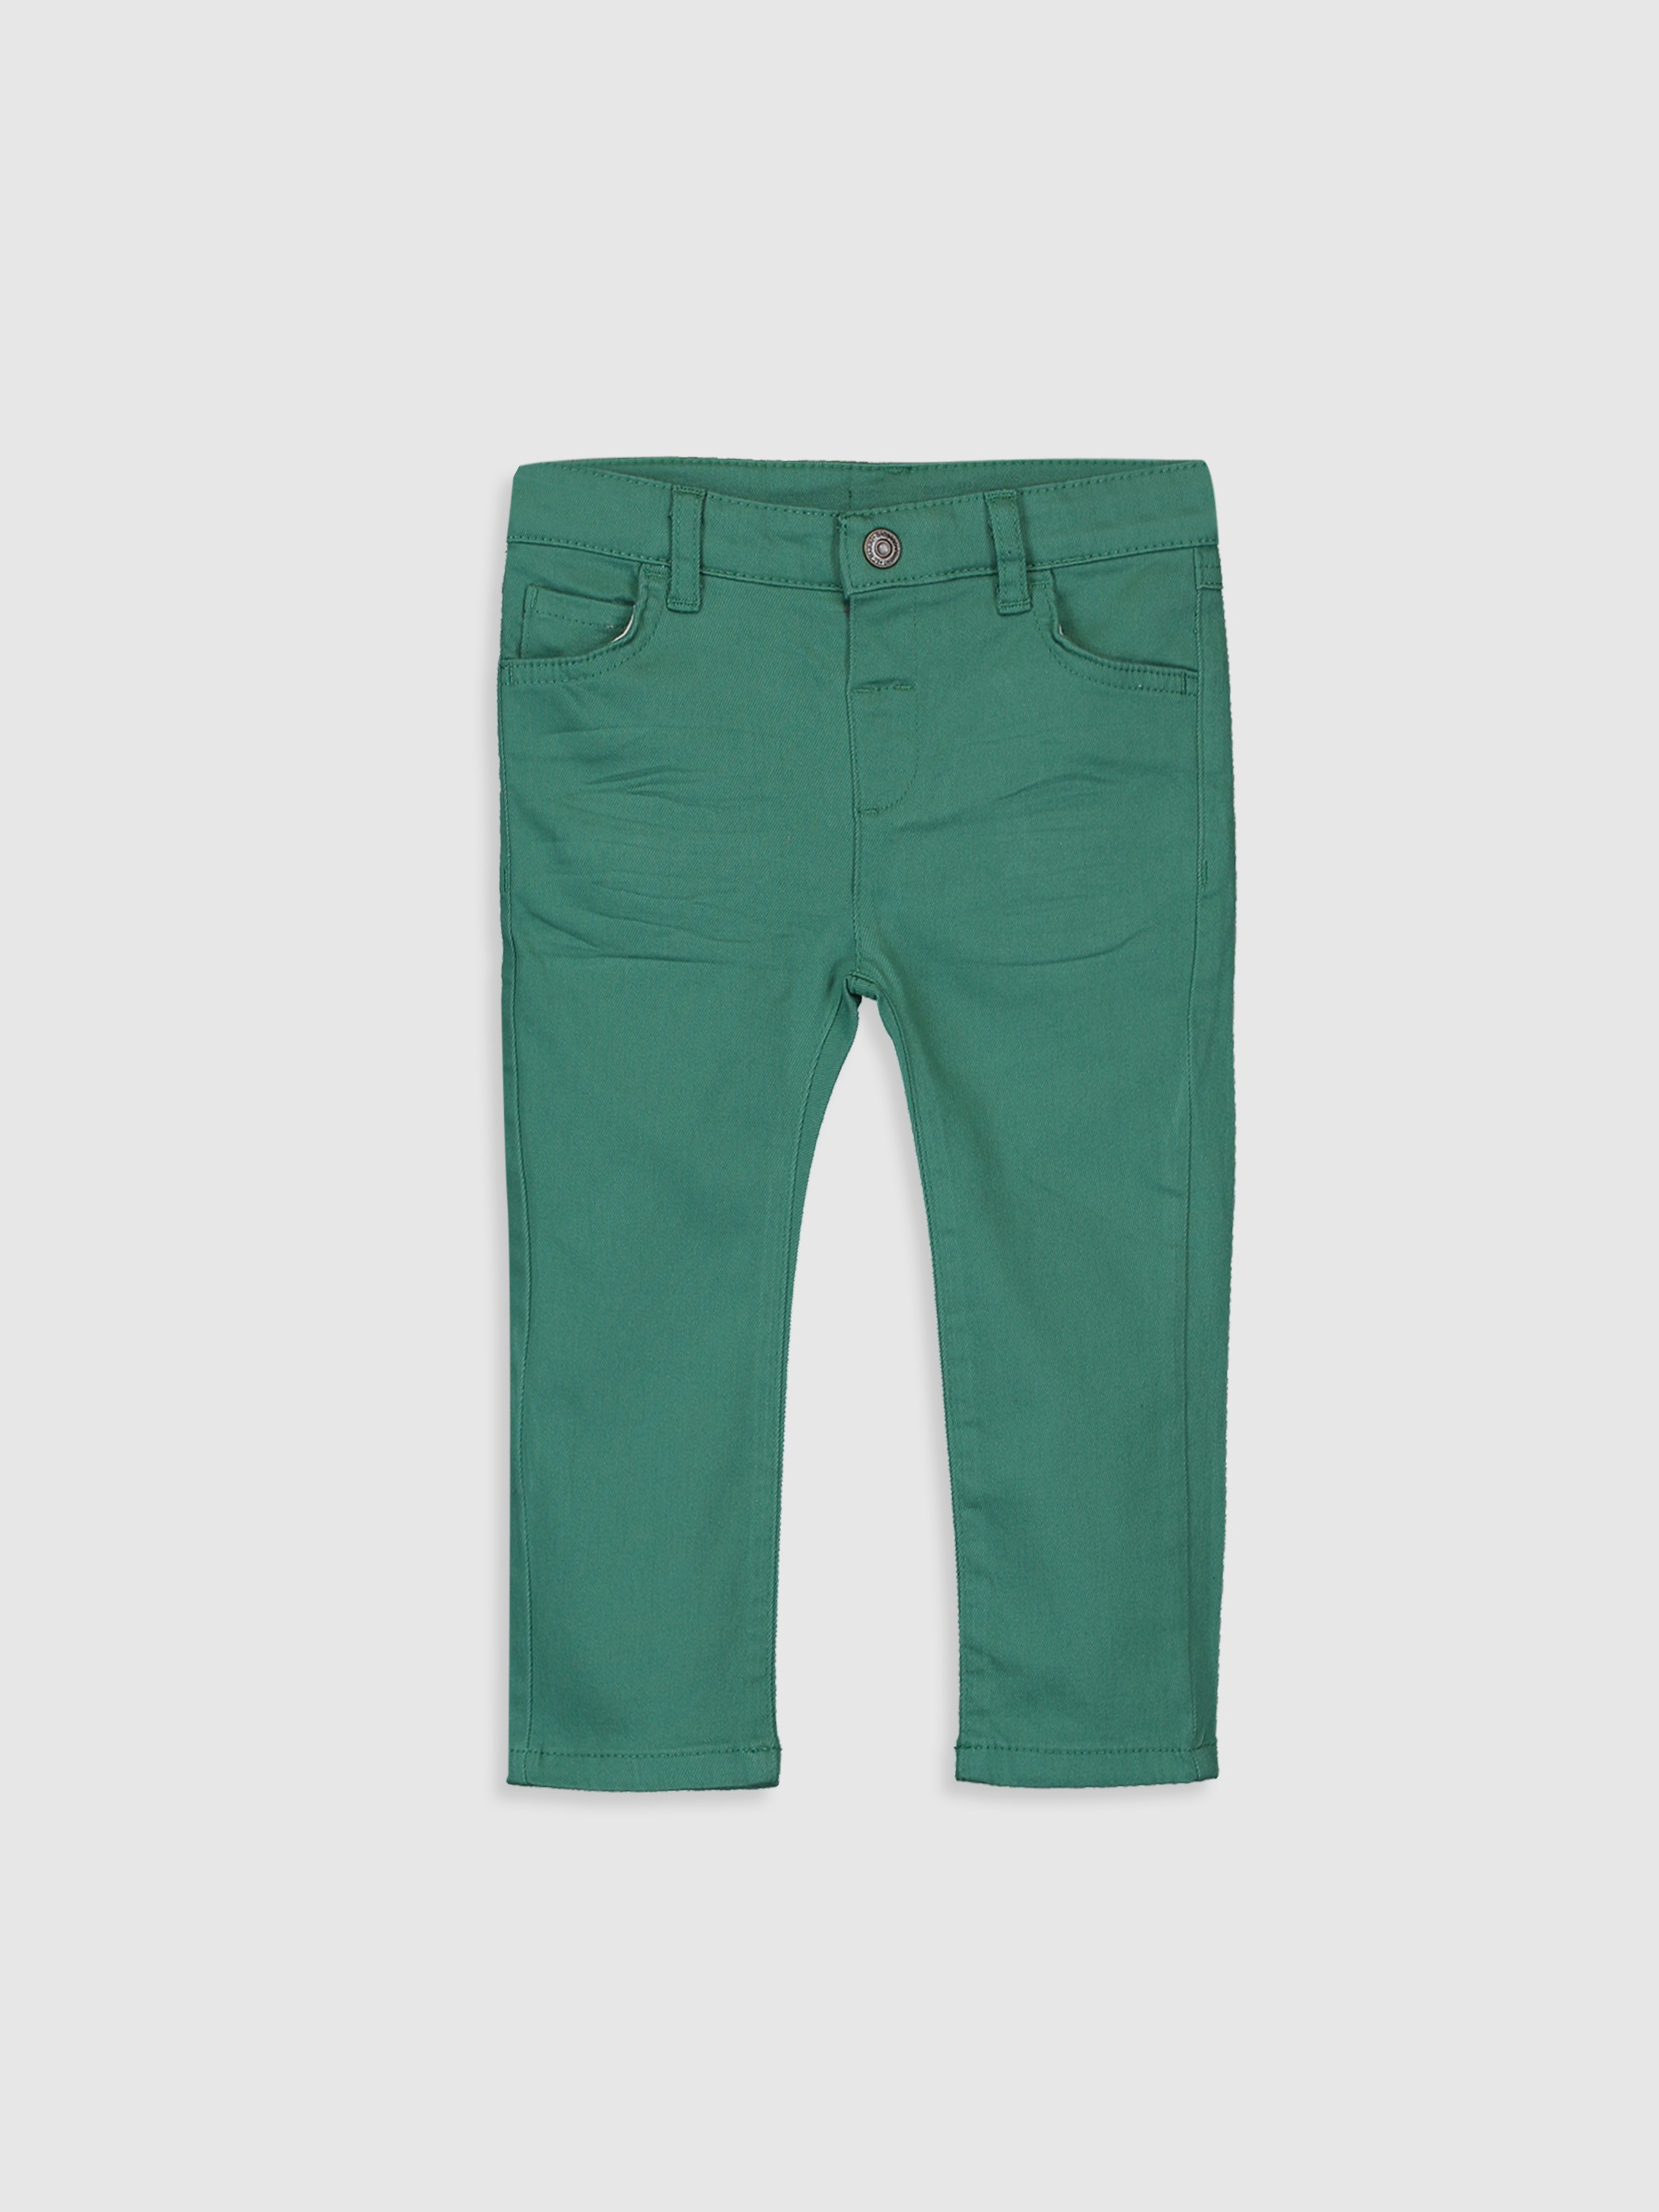 GREEN - Trousers - 0S1118Z1